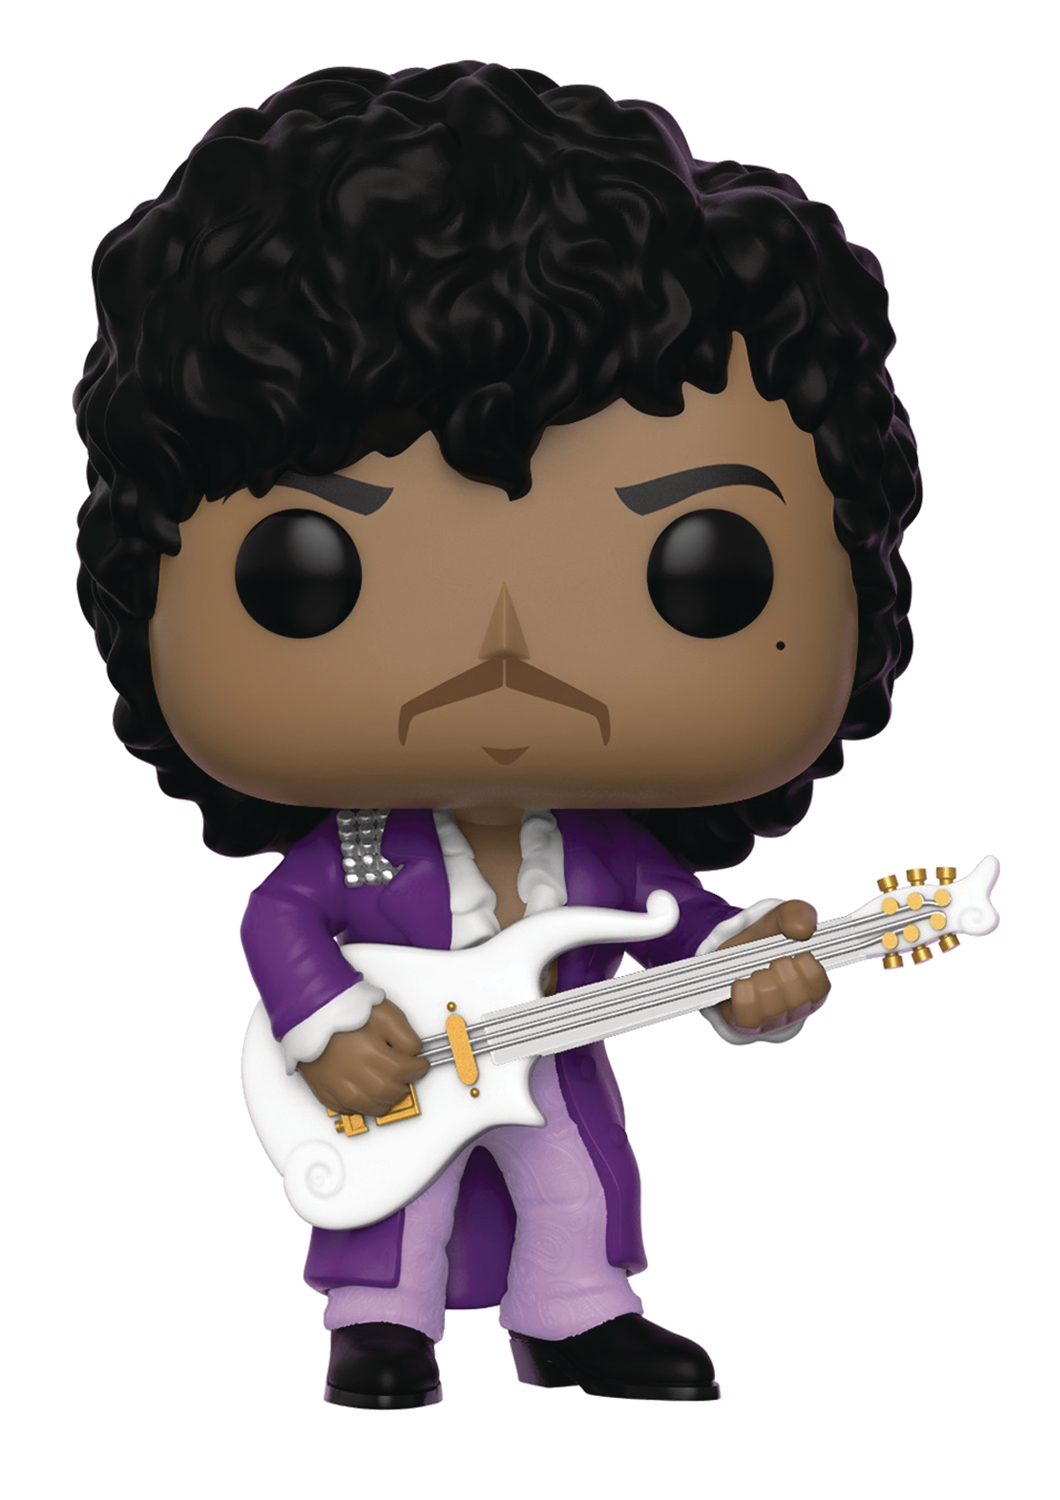 POP ROCKS PRINCE PURPLE RAIN VINYL FIGURE